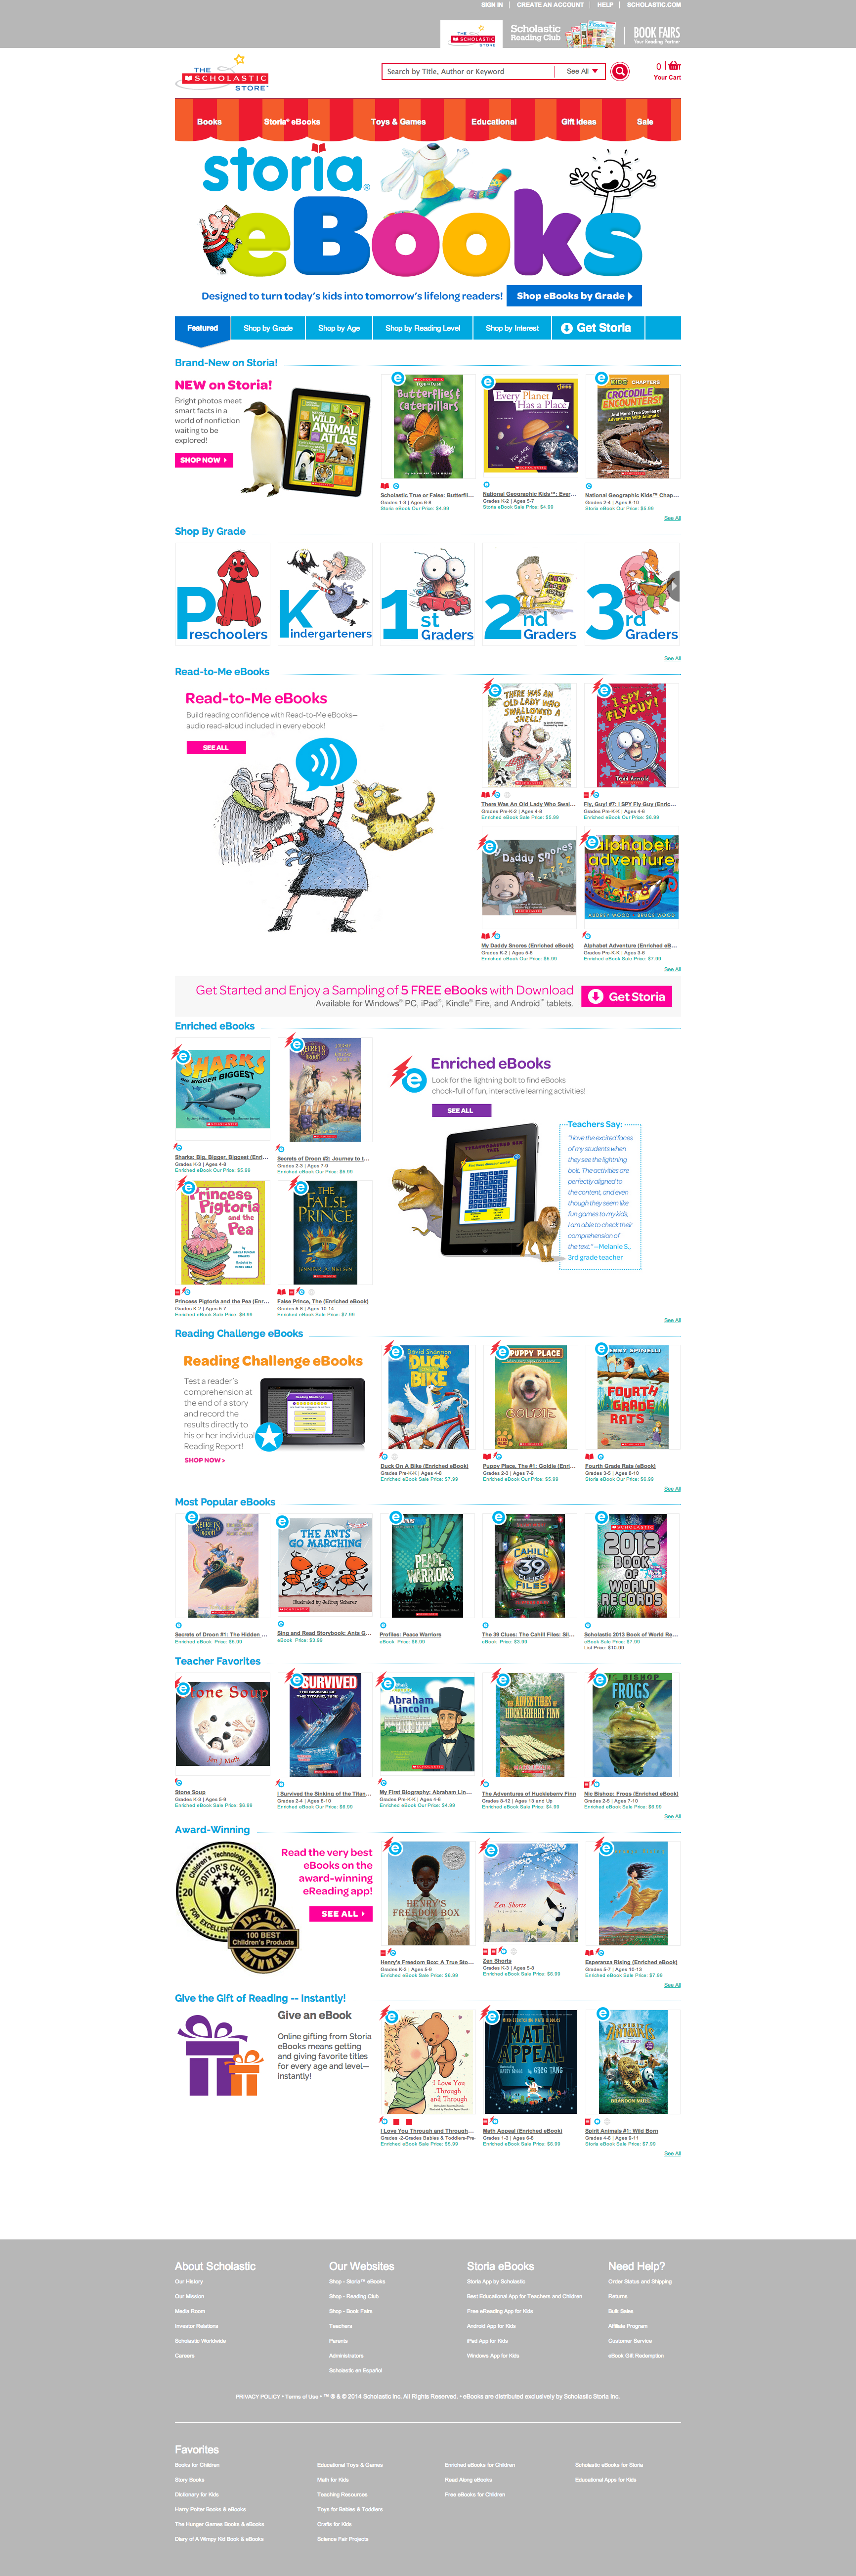 Example of Scholastic Store showcasing Storia eBooks homepage.